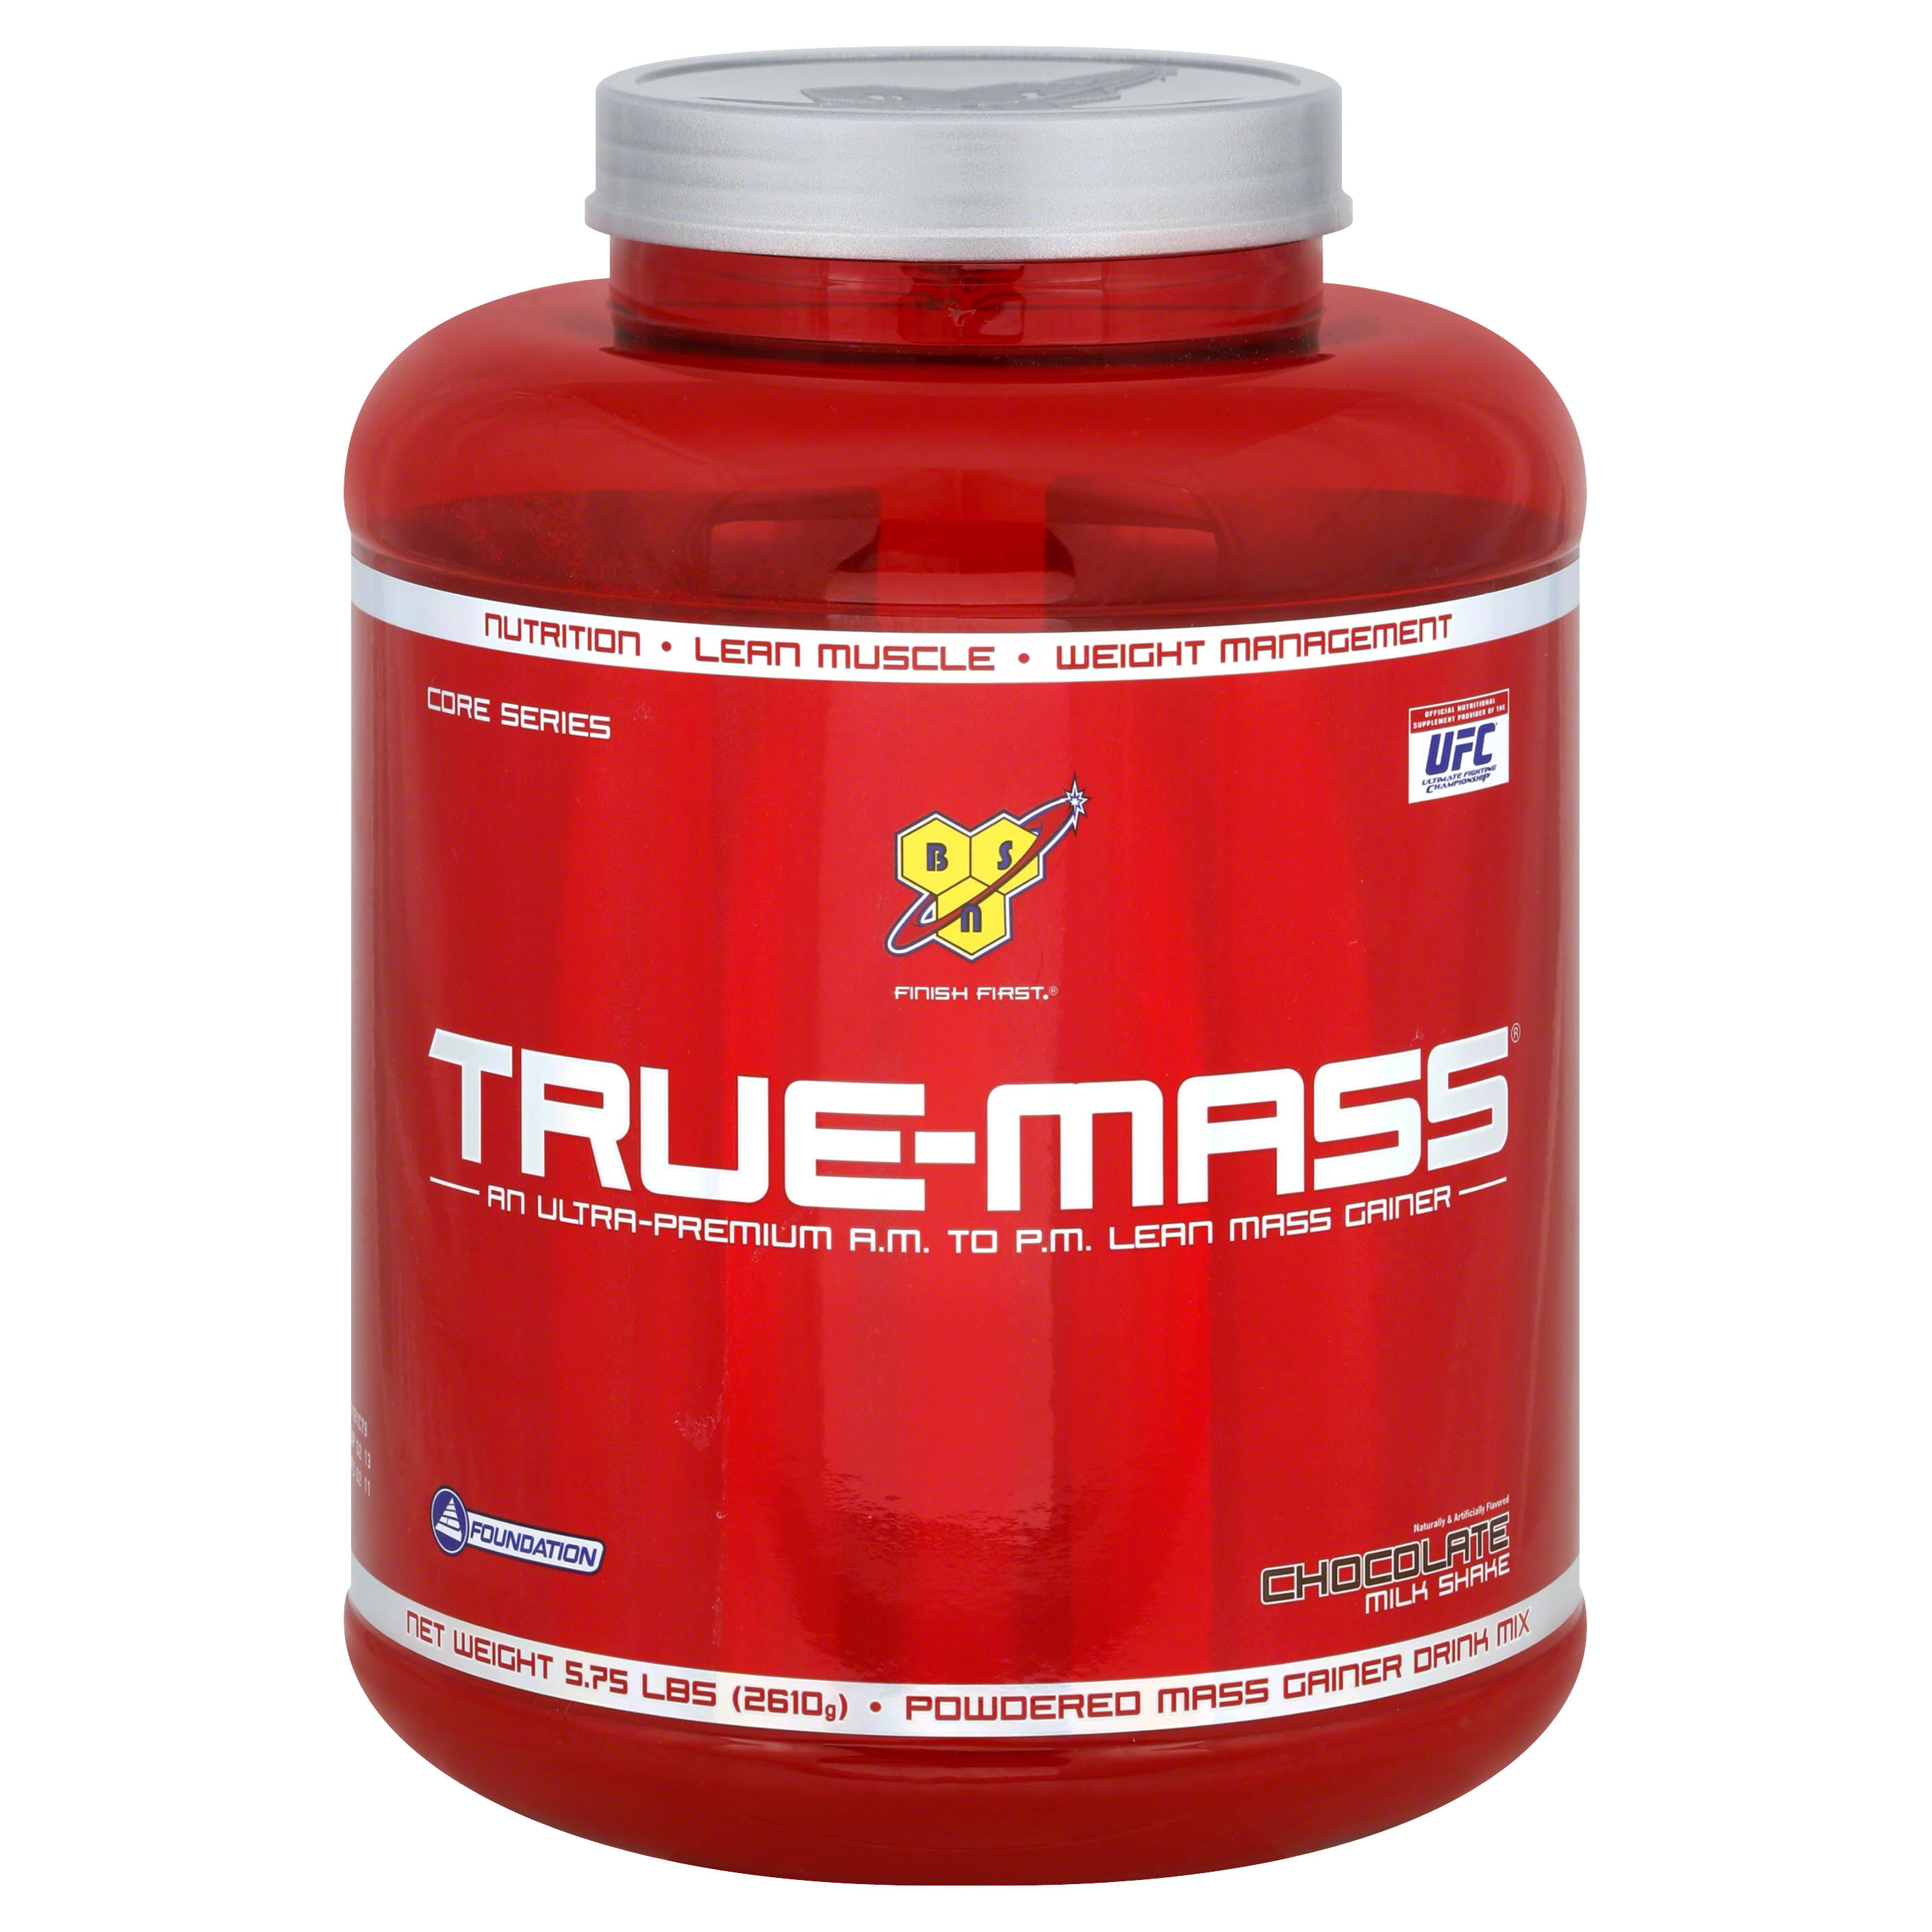 BSN True Mass Weight Gainer - Chocolate Milkshake, 5.82lbs